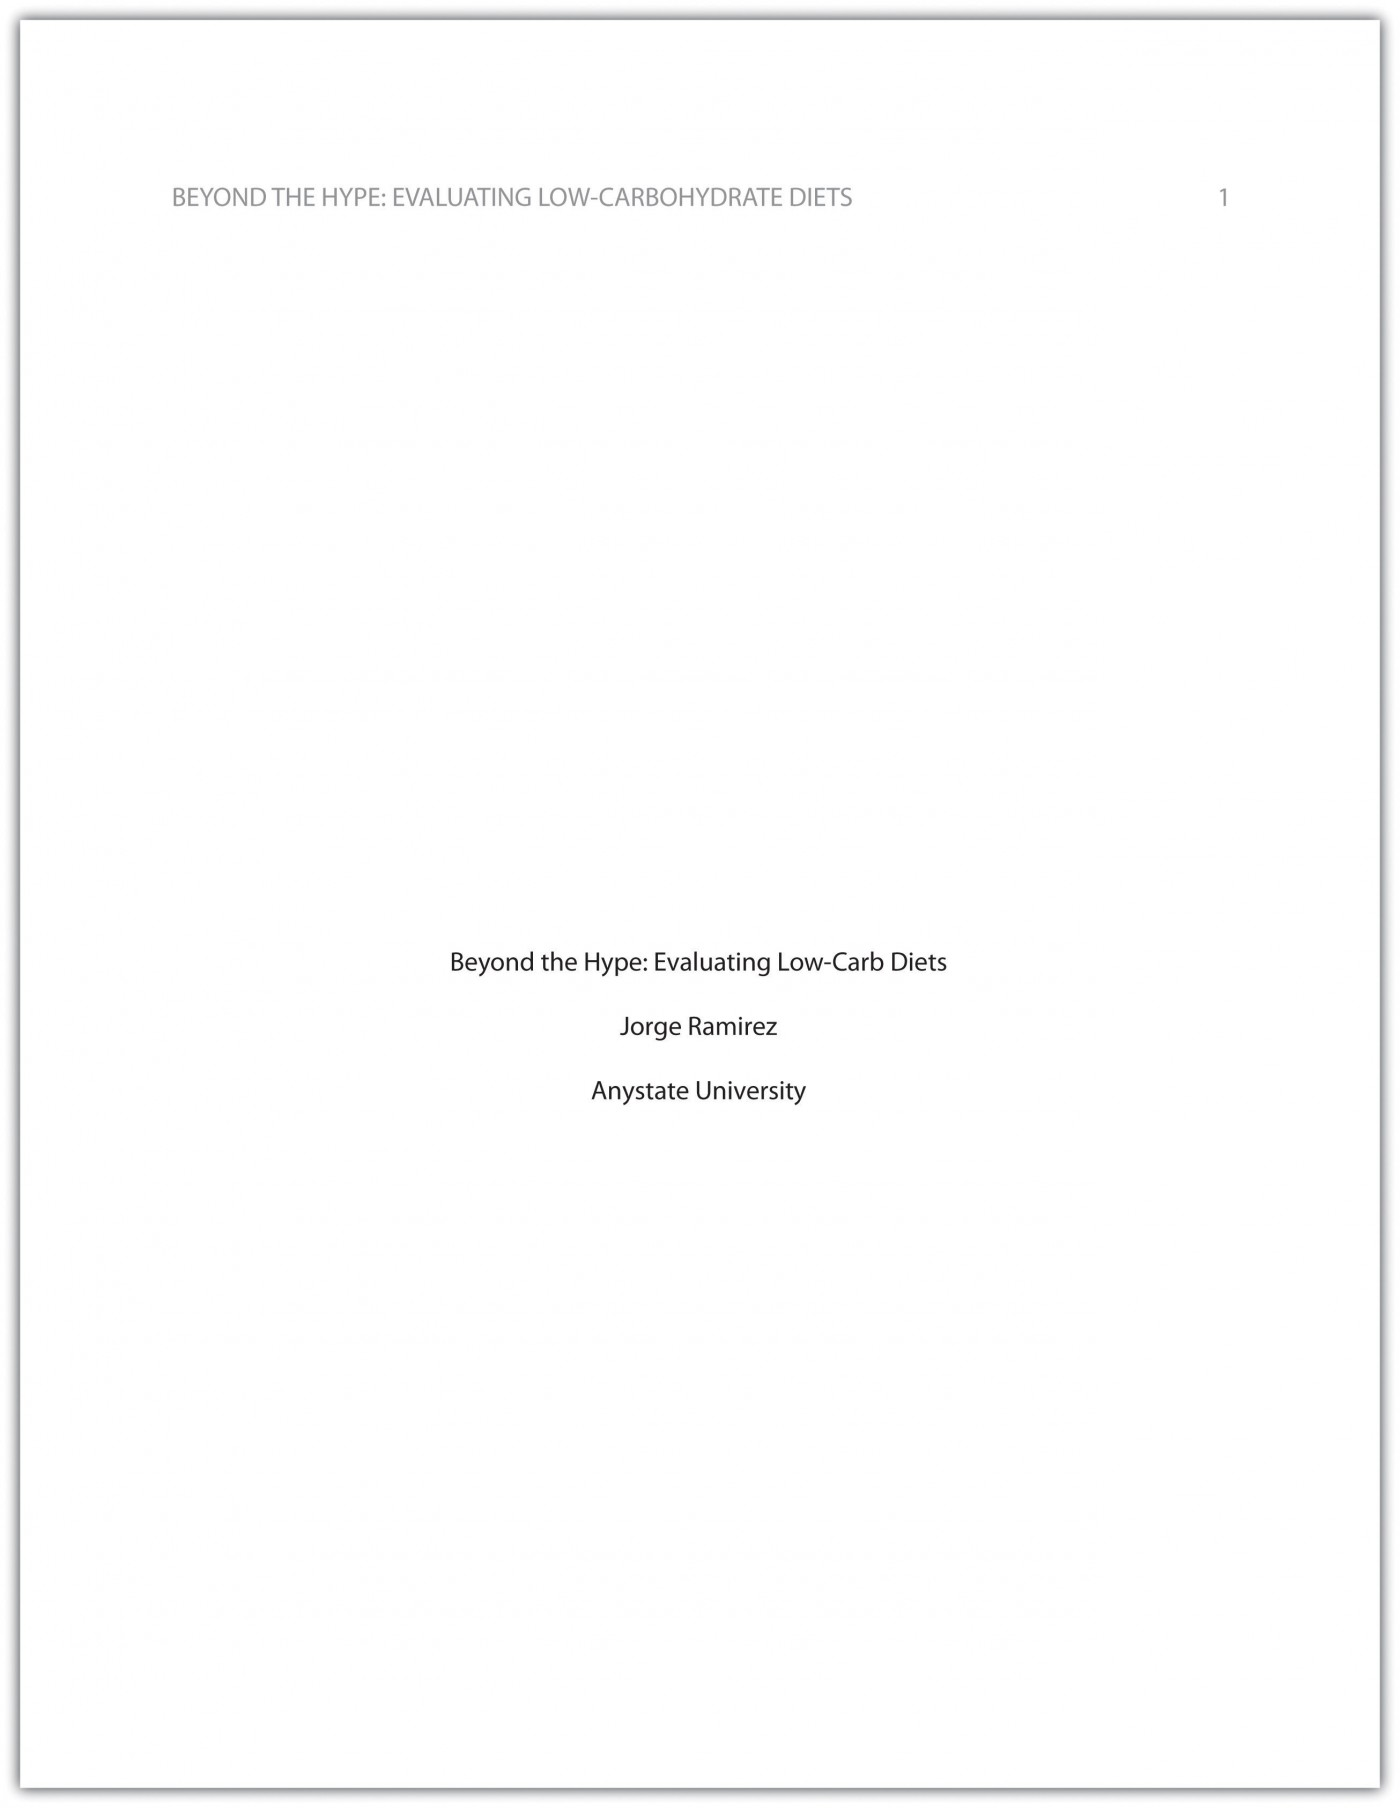 Internet and privacy essay